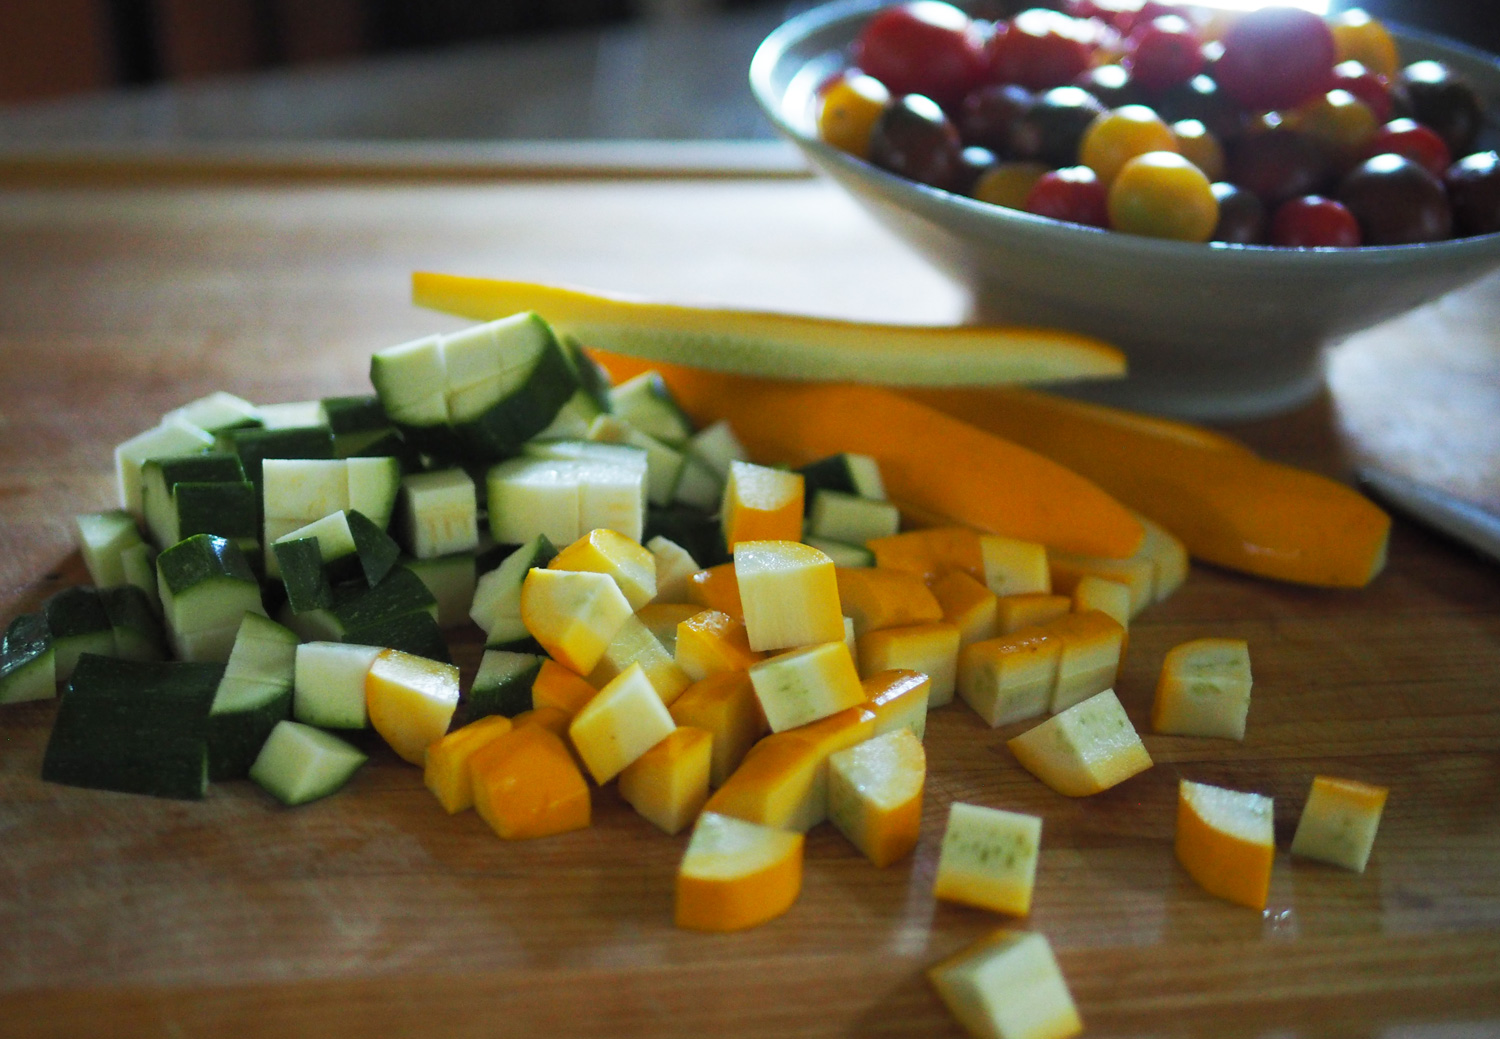 Zucchini and Yellow Squash cubed.